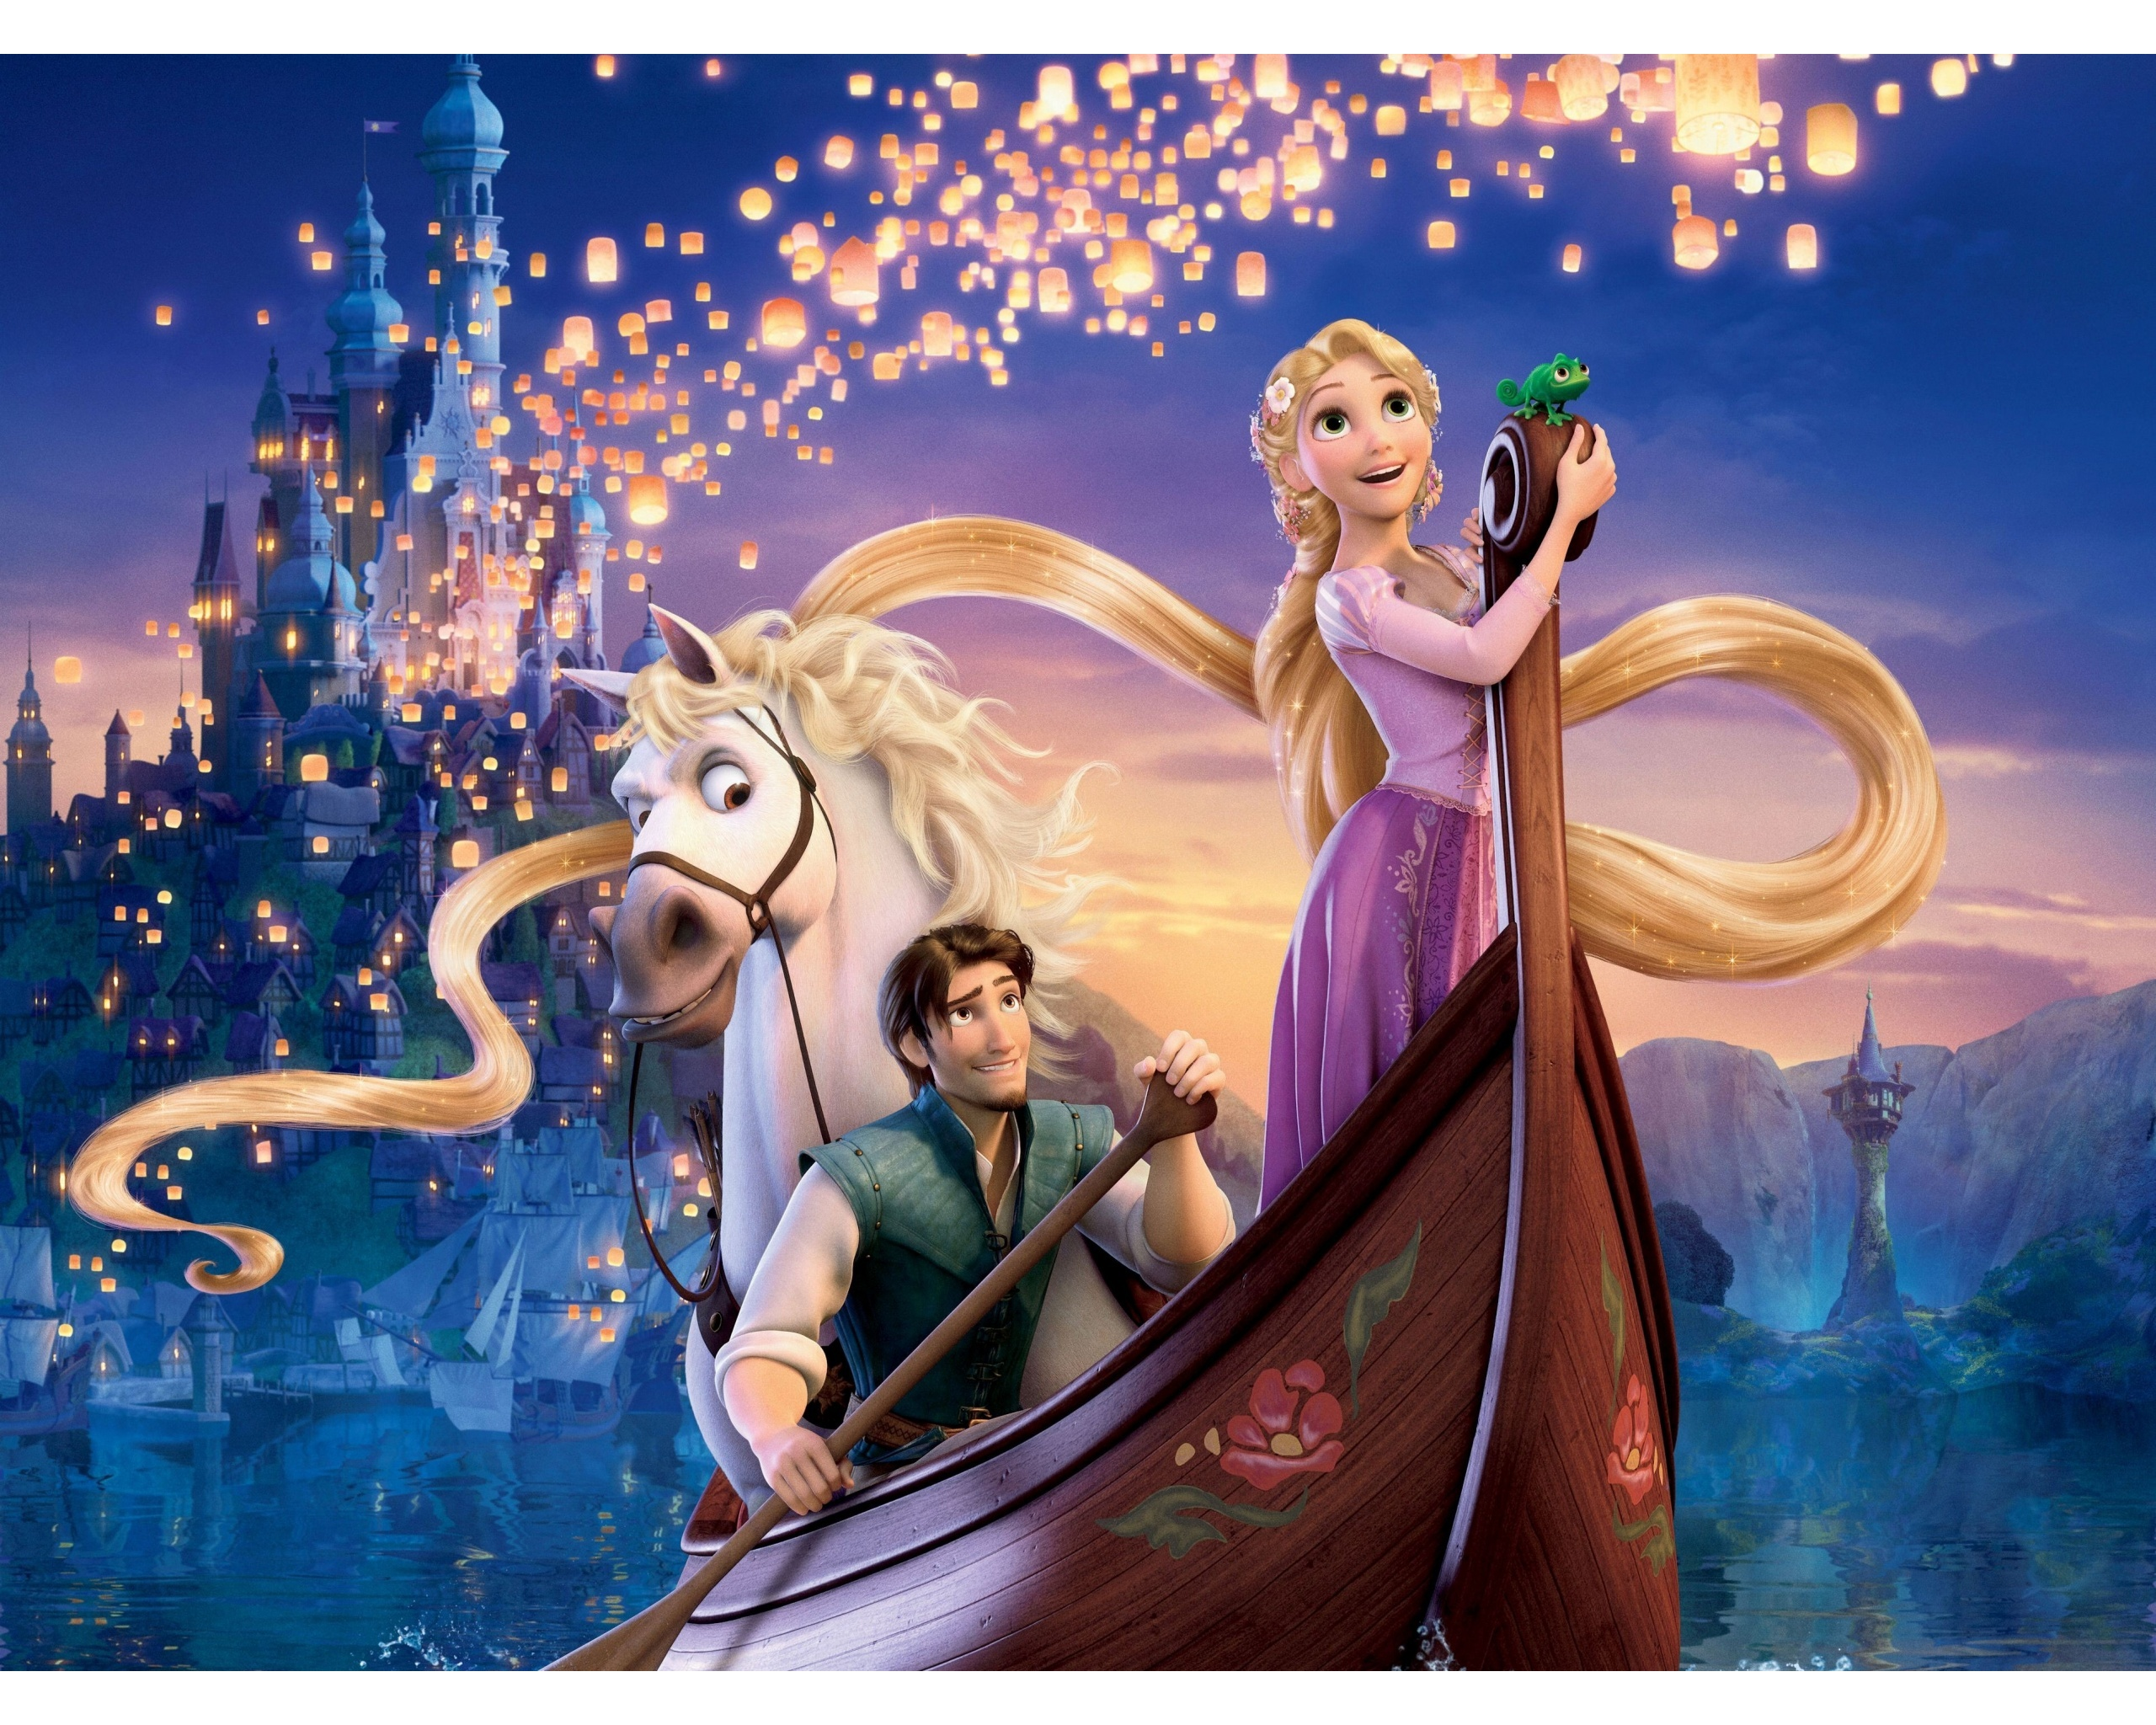 Tangled Wallpapers 2560x2048 1717508